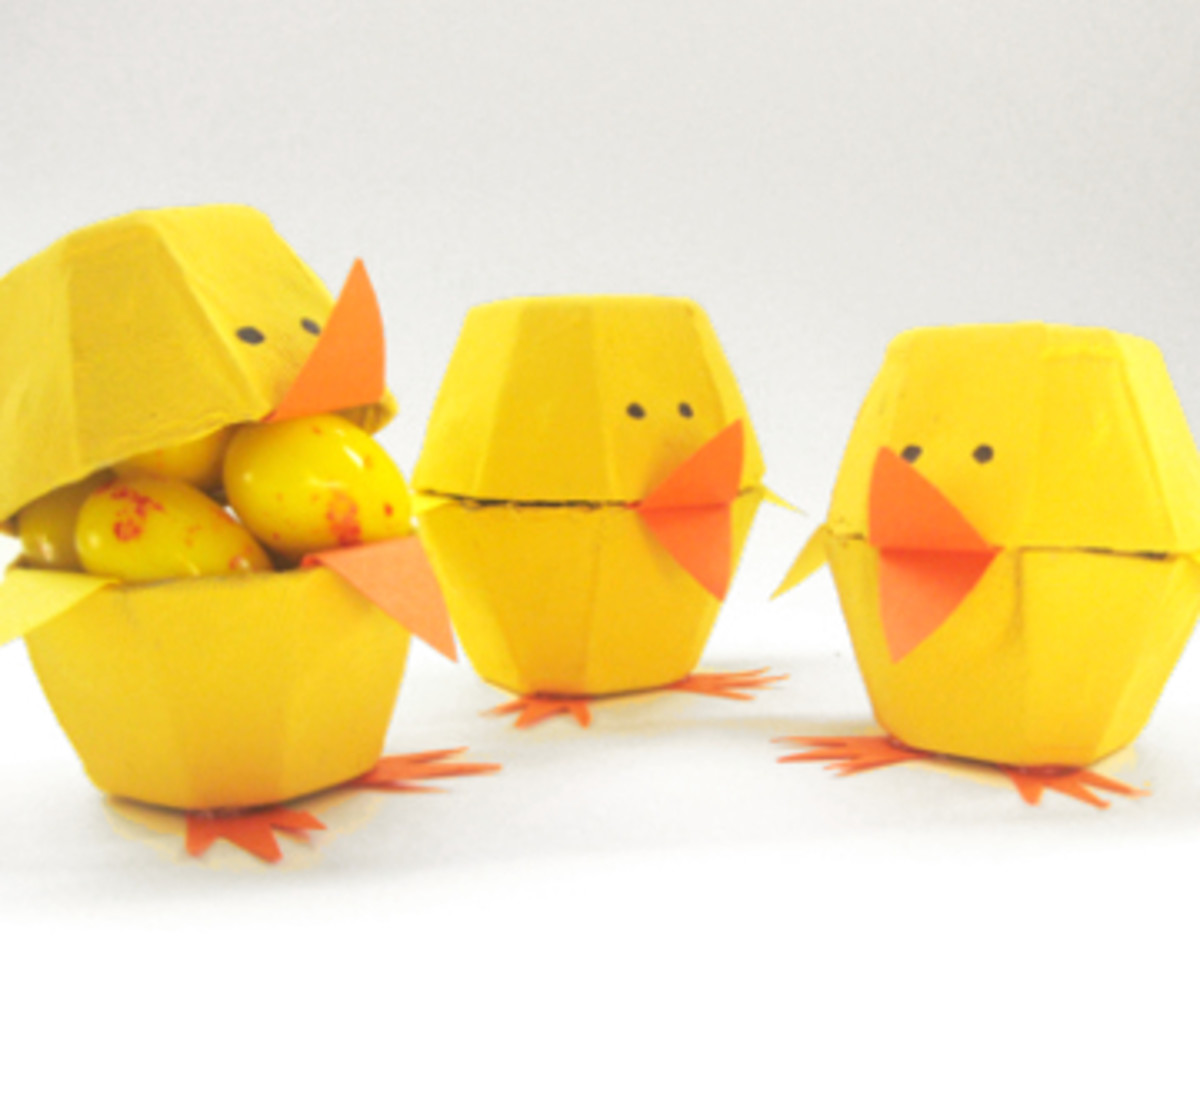 These Easter egg carton chicks are just adorable!